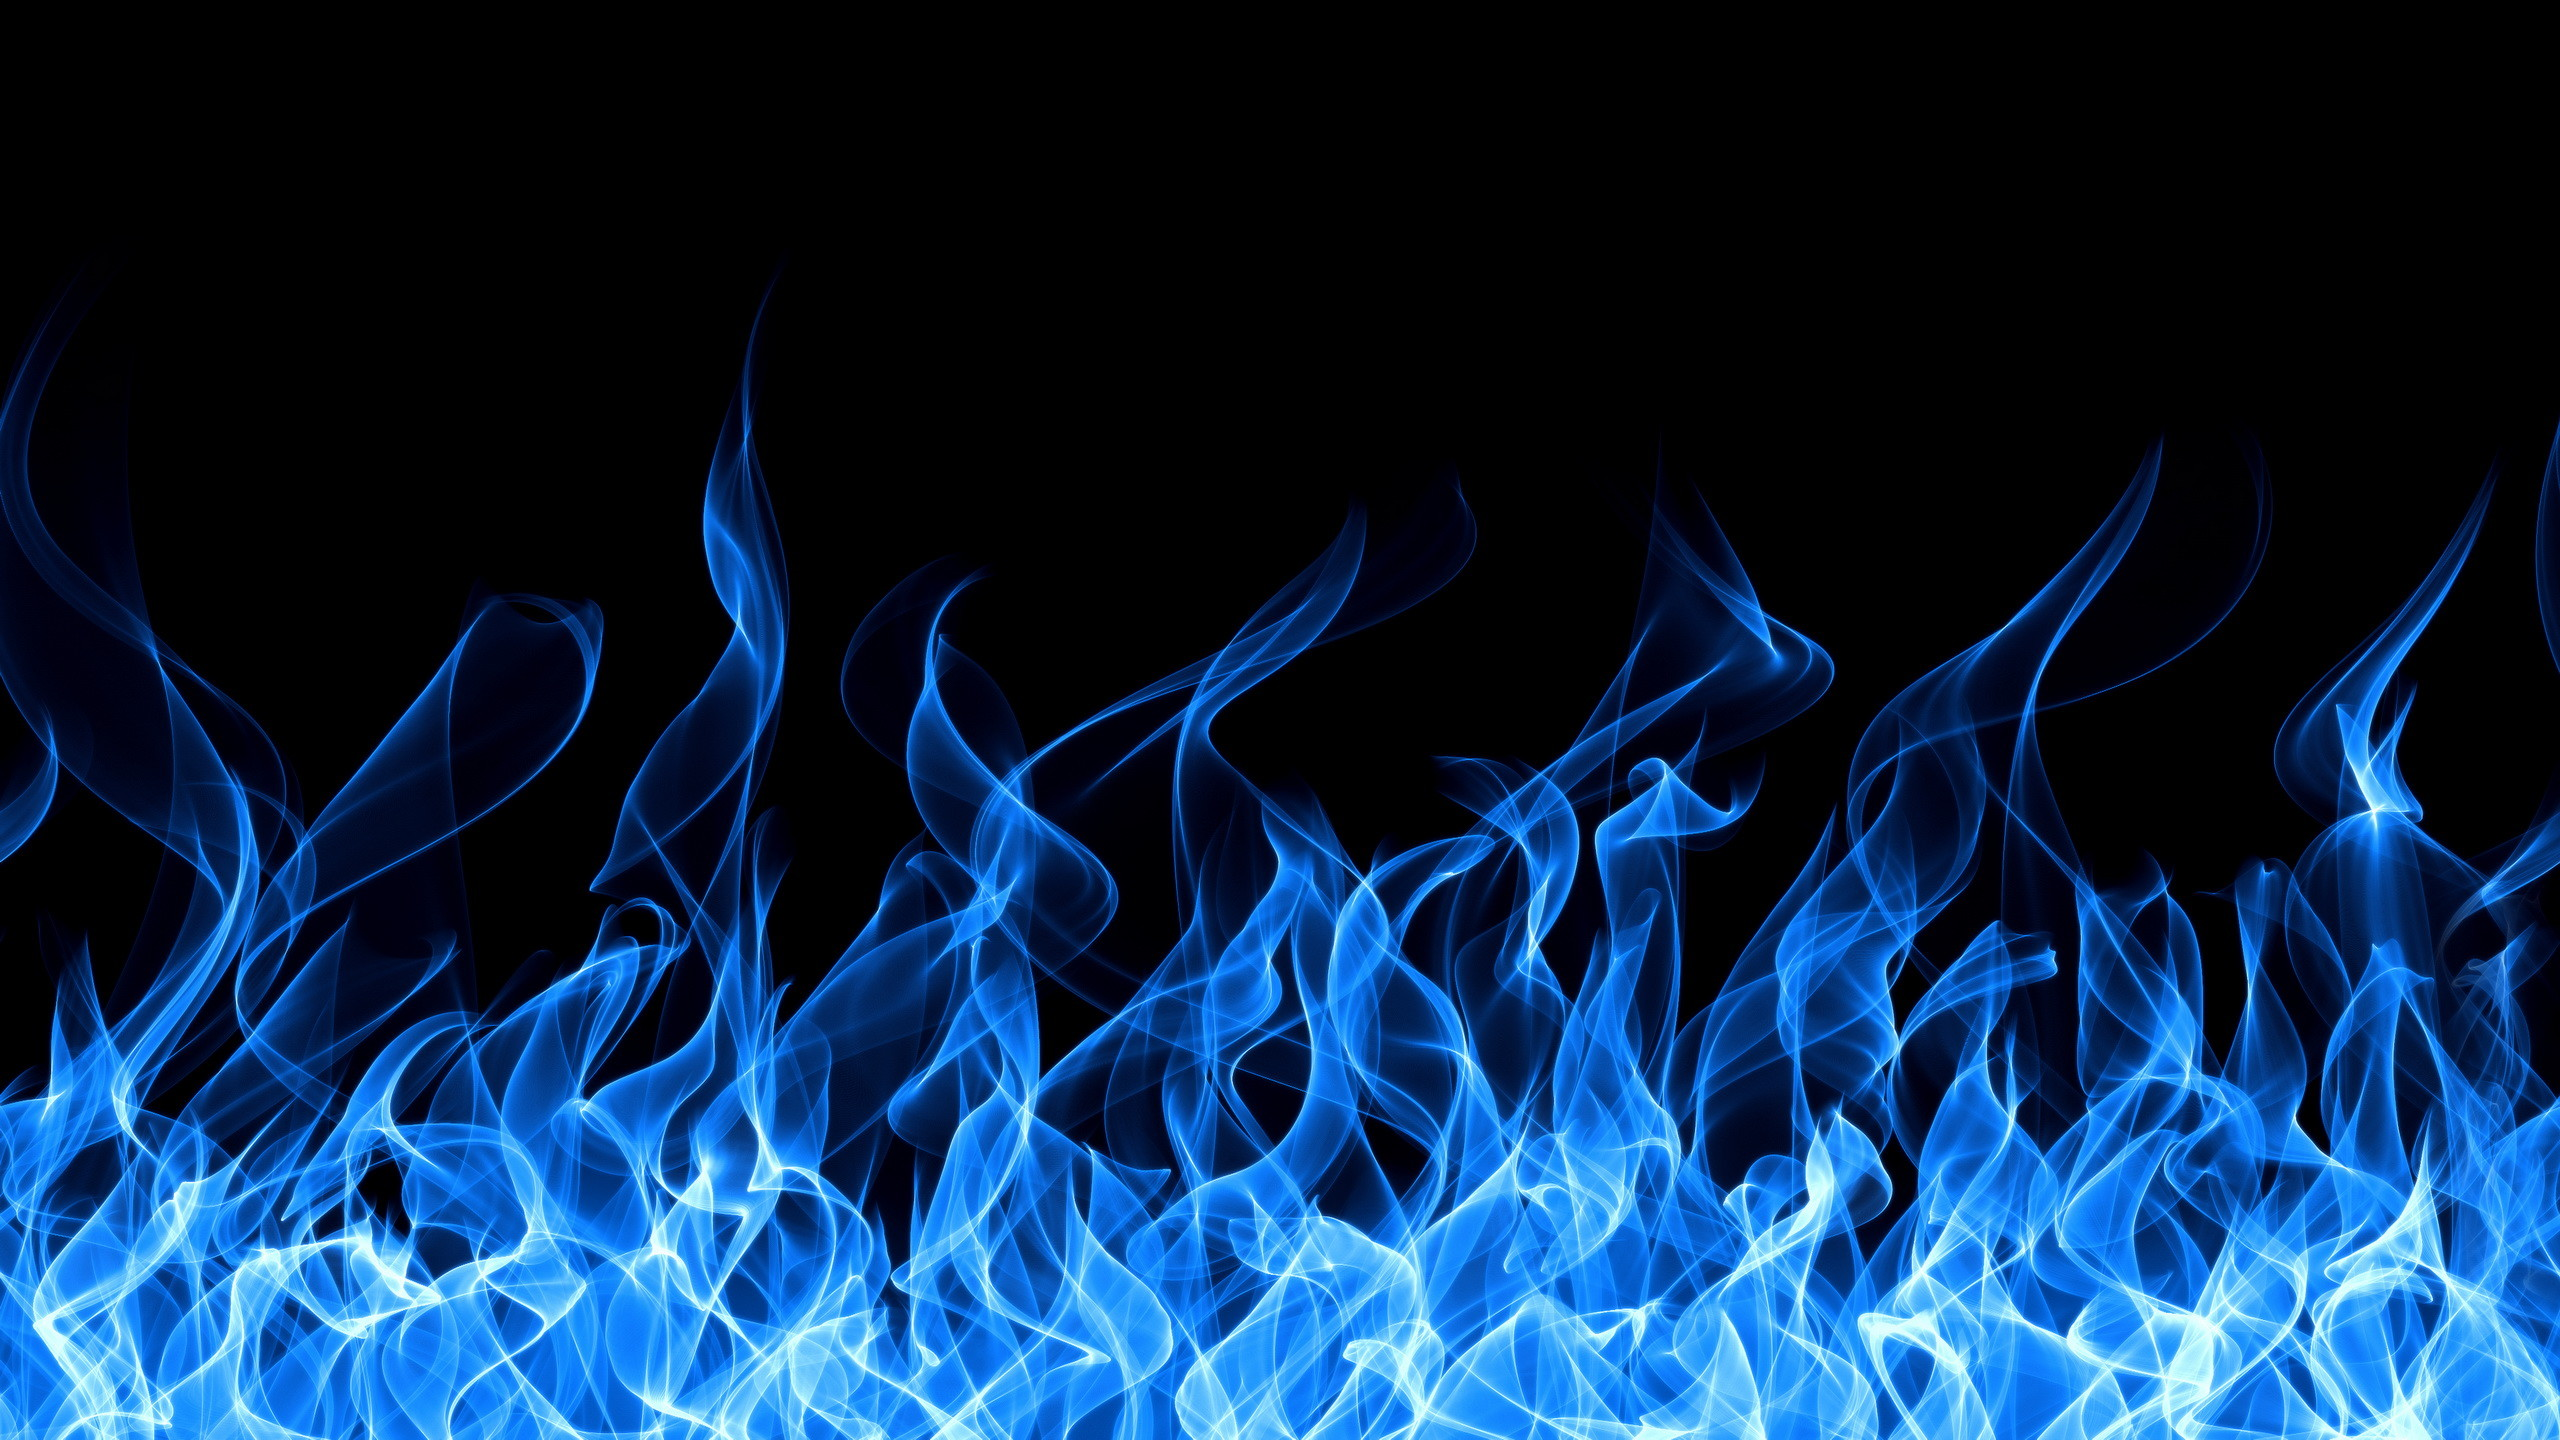 blue fire wallpaper 64 images